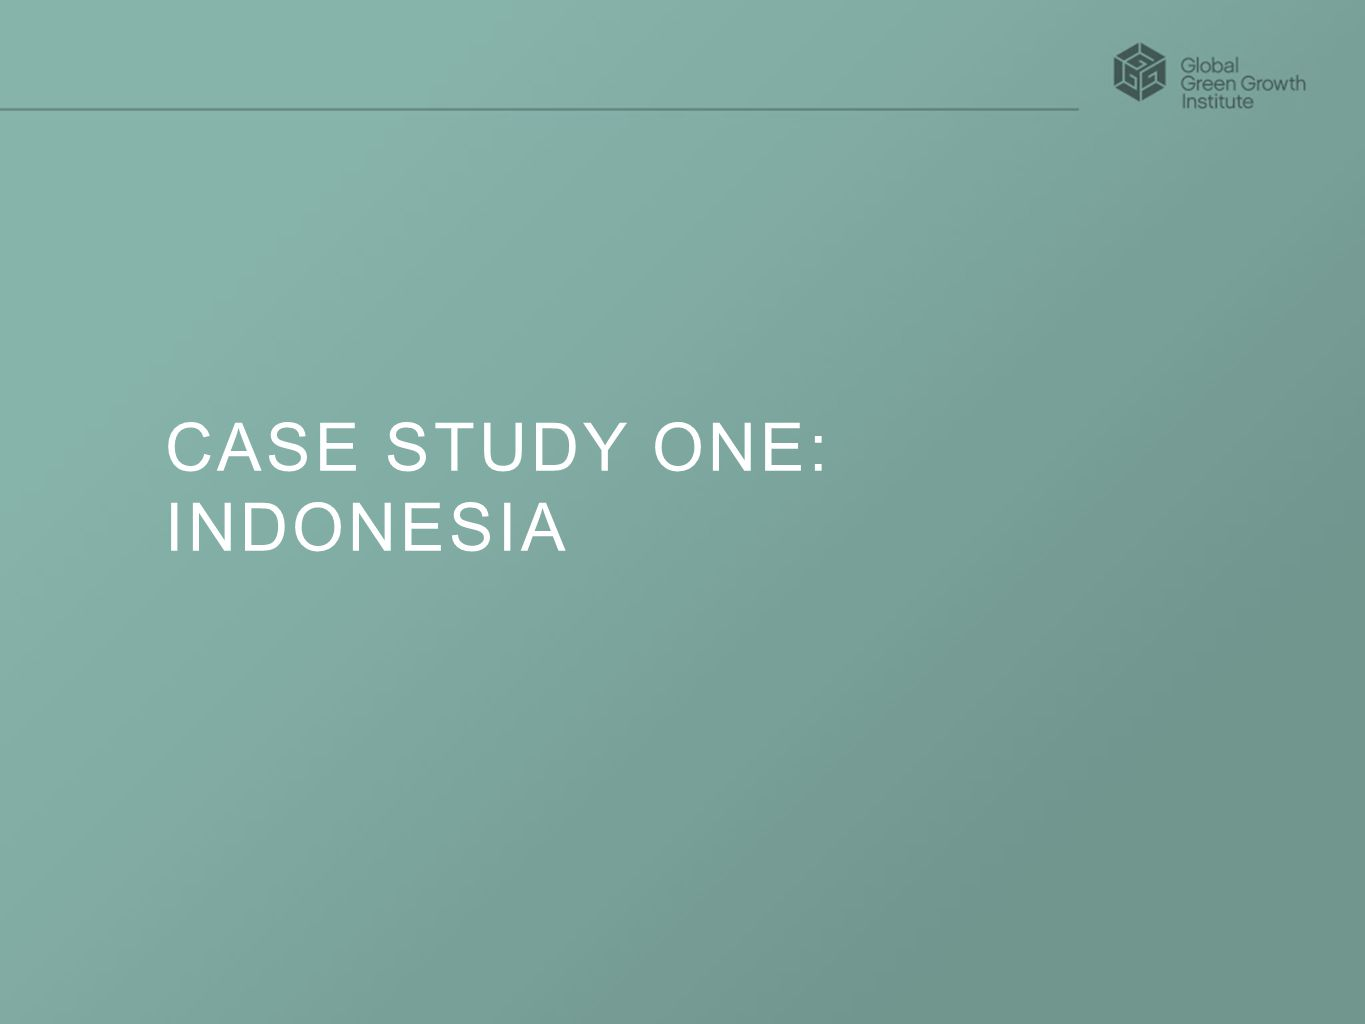 CASE STUDY ONE: INDONESIA